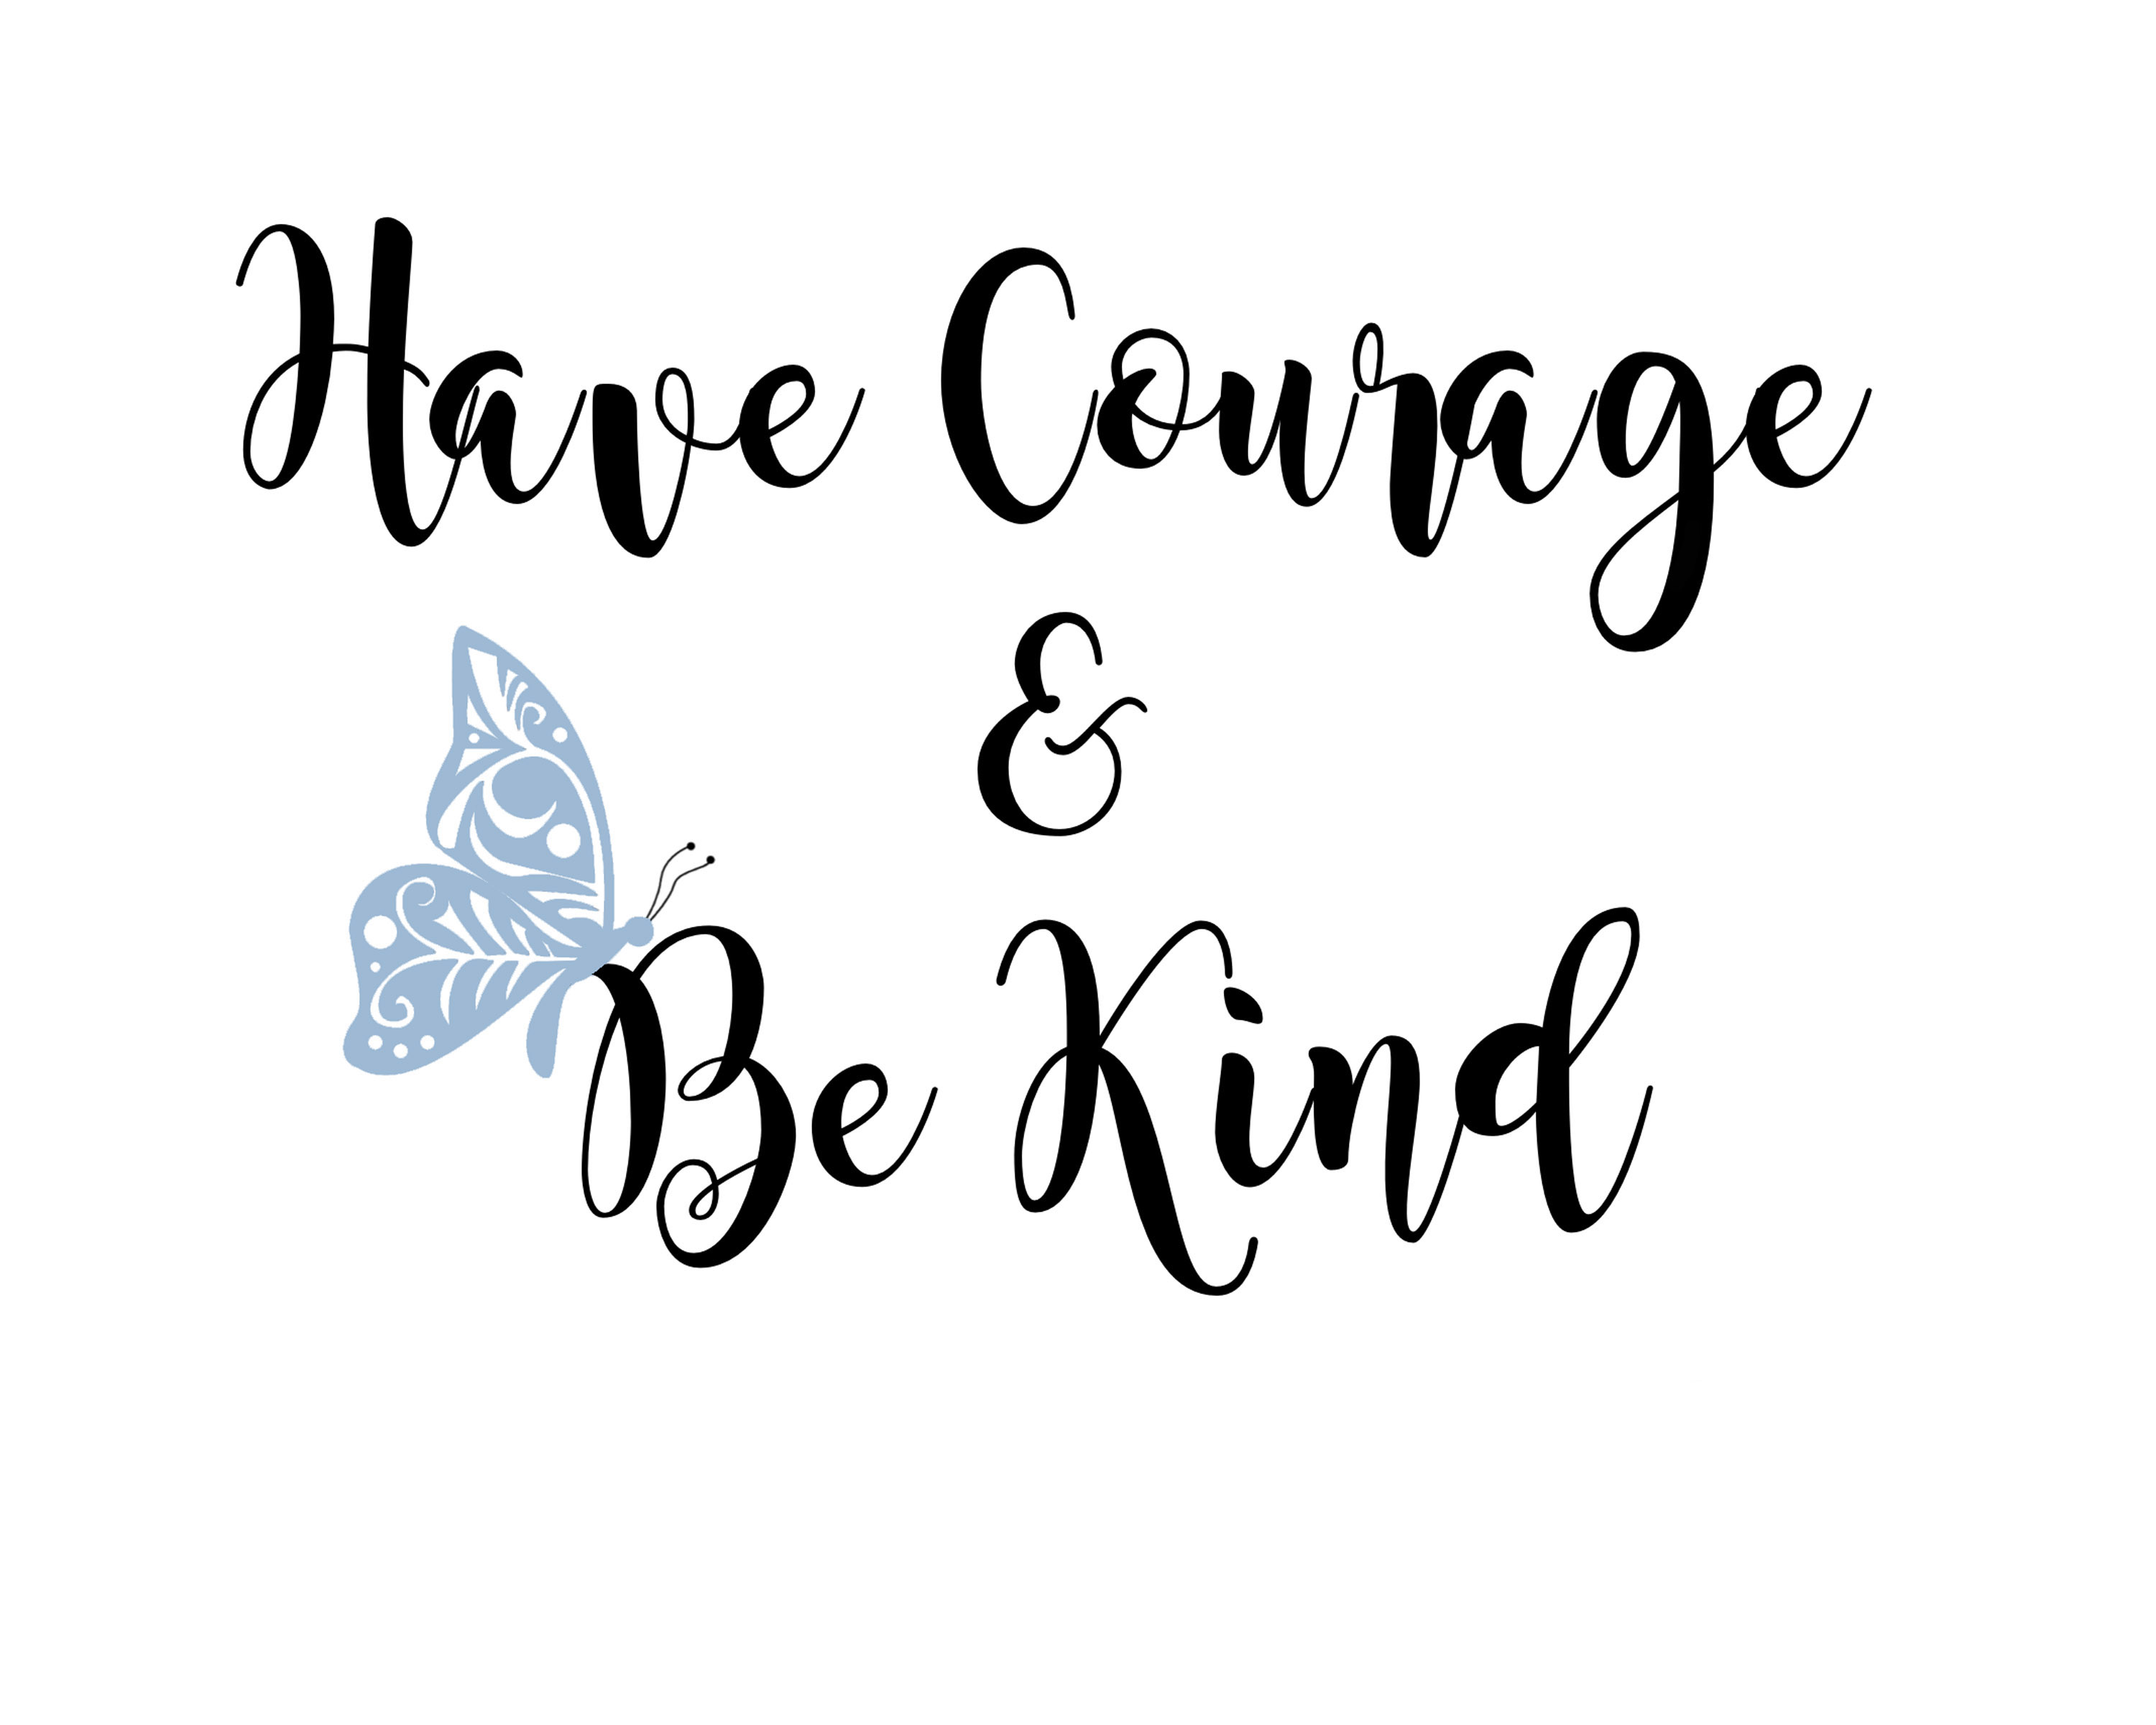 Have courage and be kind.